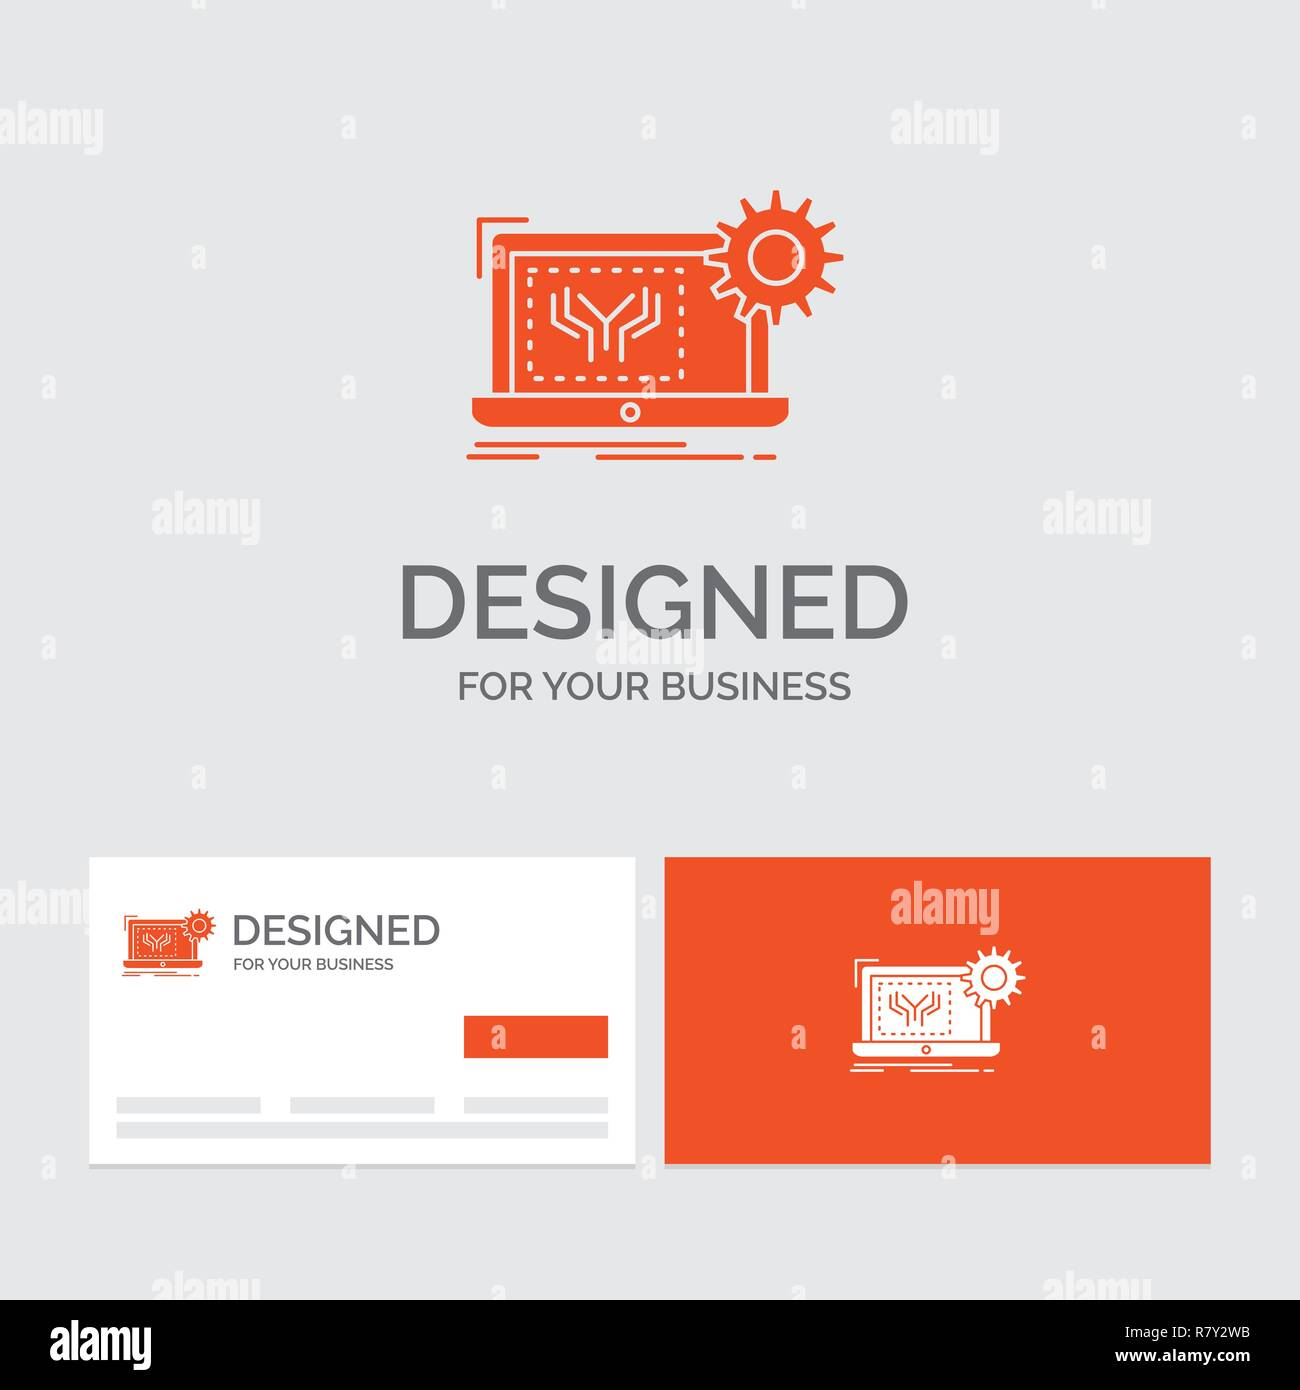 Business logo template for Blueprint, circuit, electronics, engineering, hardware. Orange Visiting Cards with Brand logo template. - Stock Image